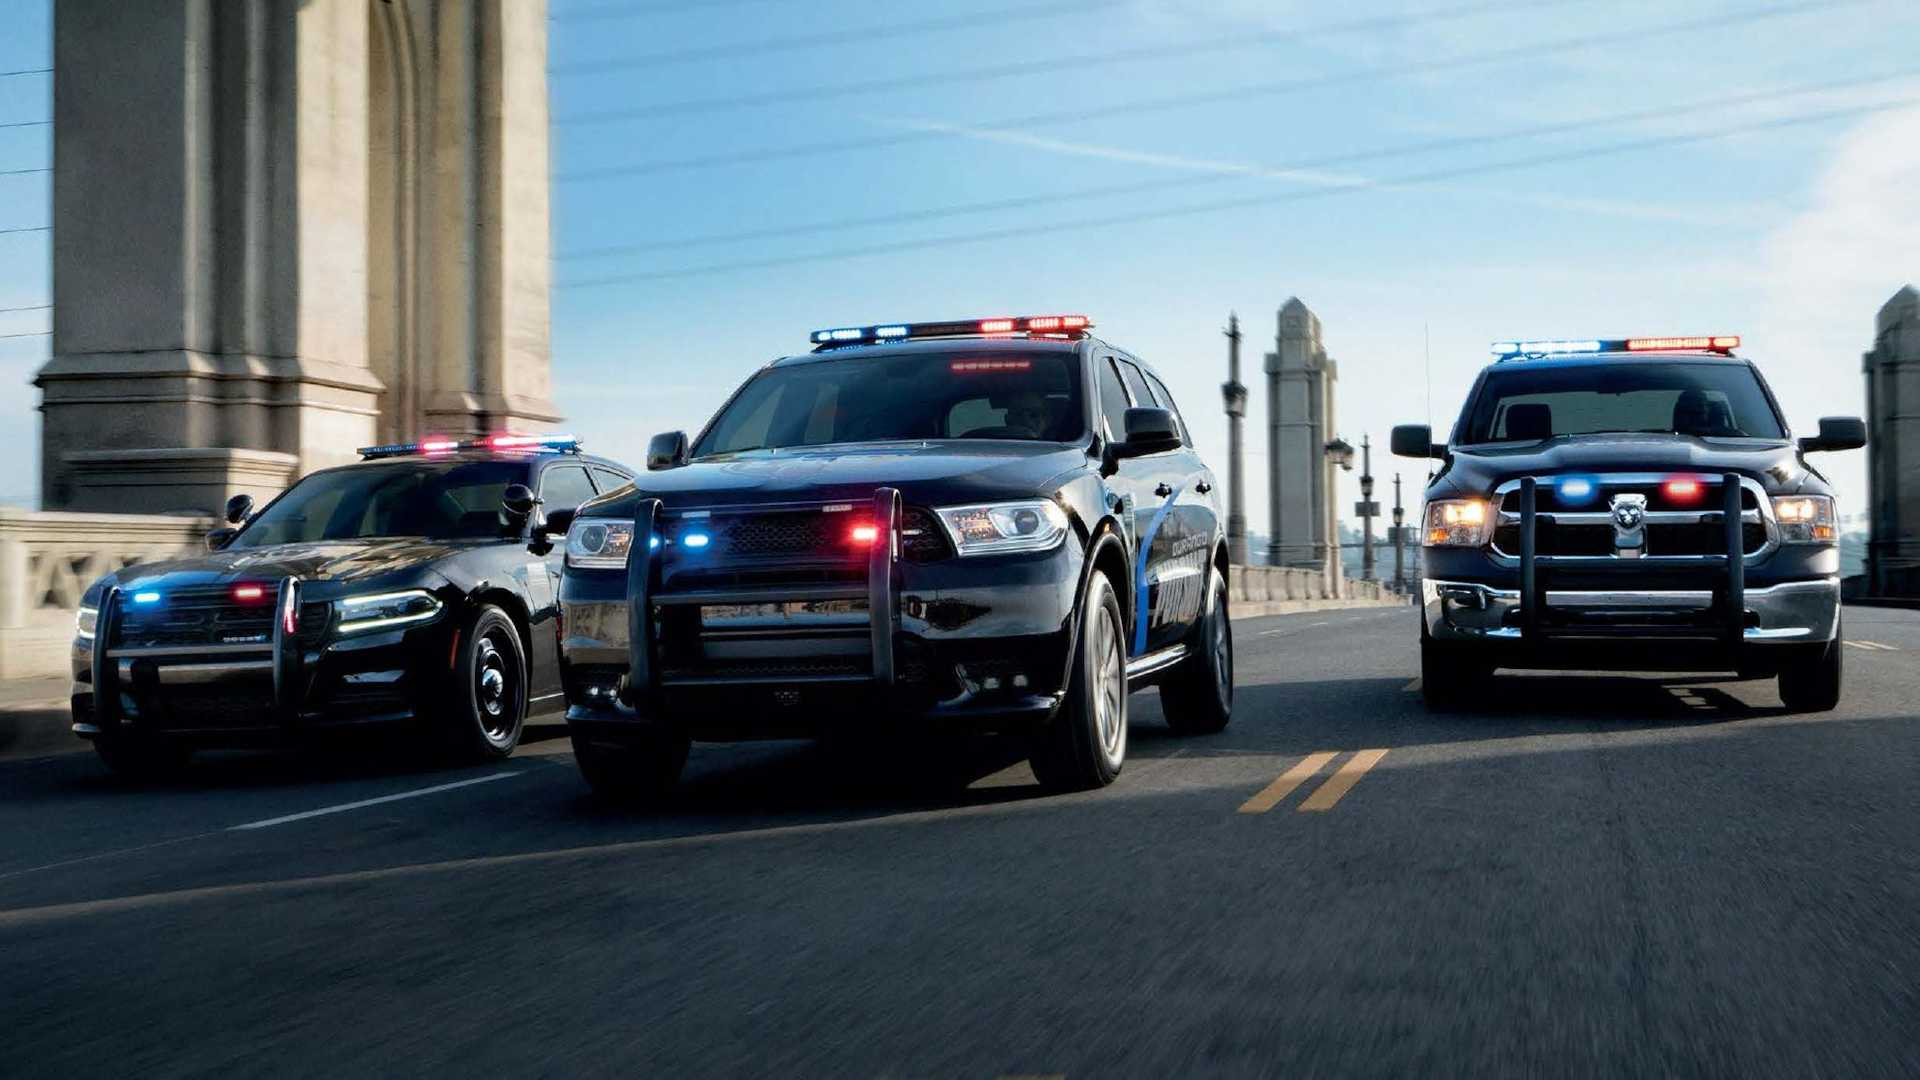 2021 Dodge Charger And Durango Get Ready To Pursuit The Baddies Autoevolution